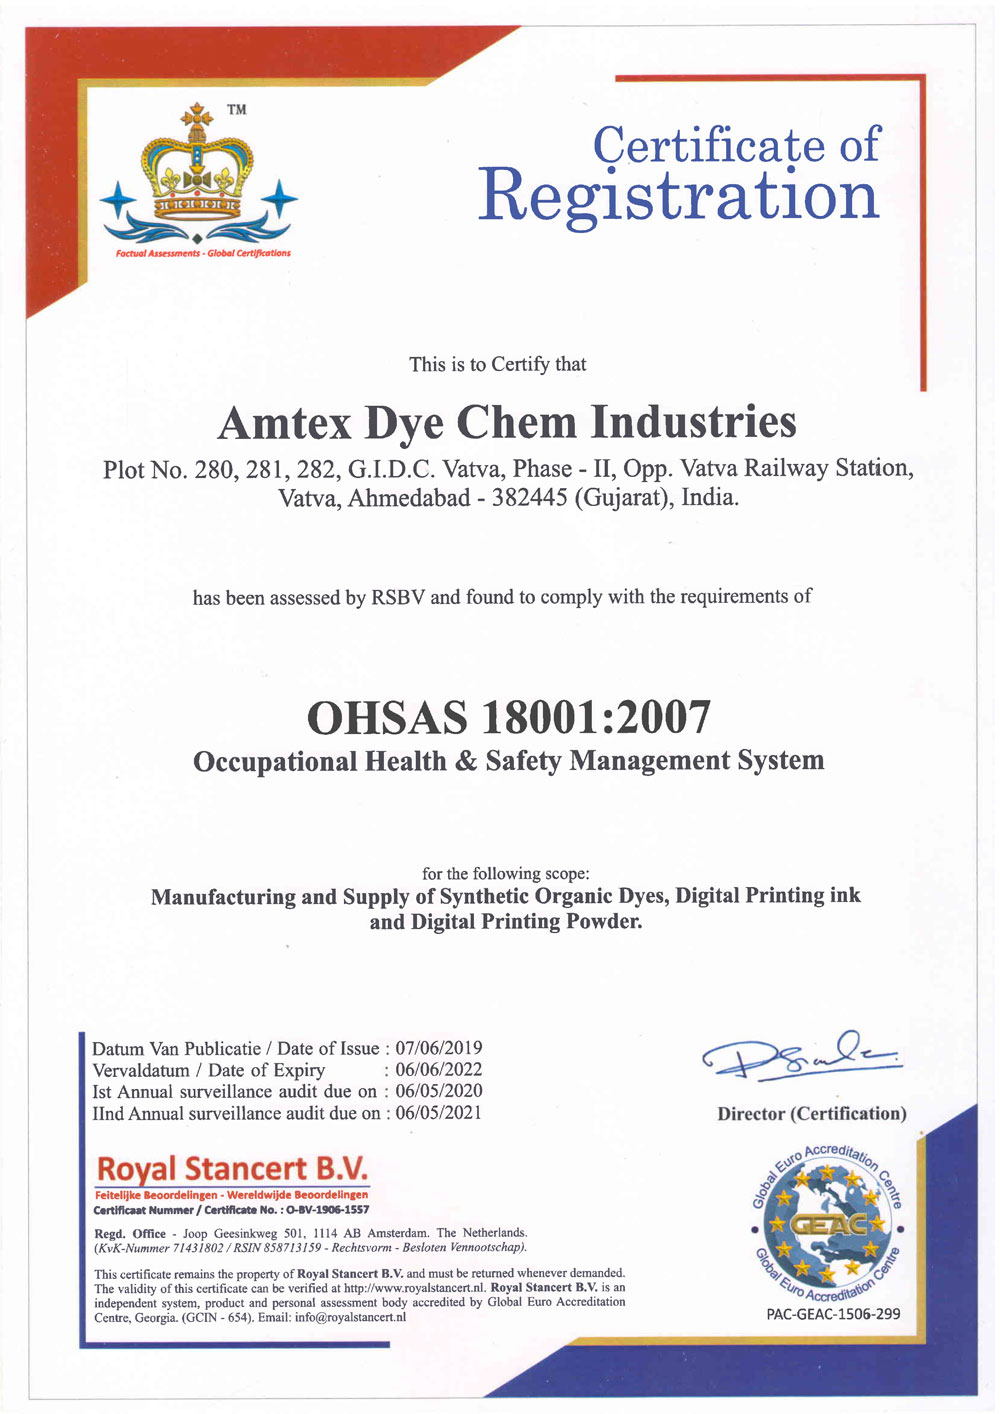 OHSAS 18001 : 2007 Occupational Health & Safety Management System